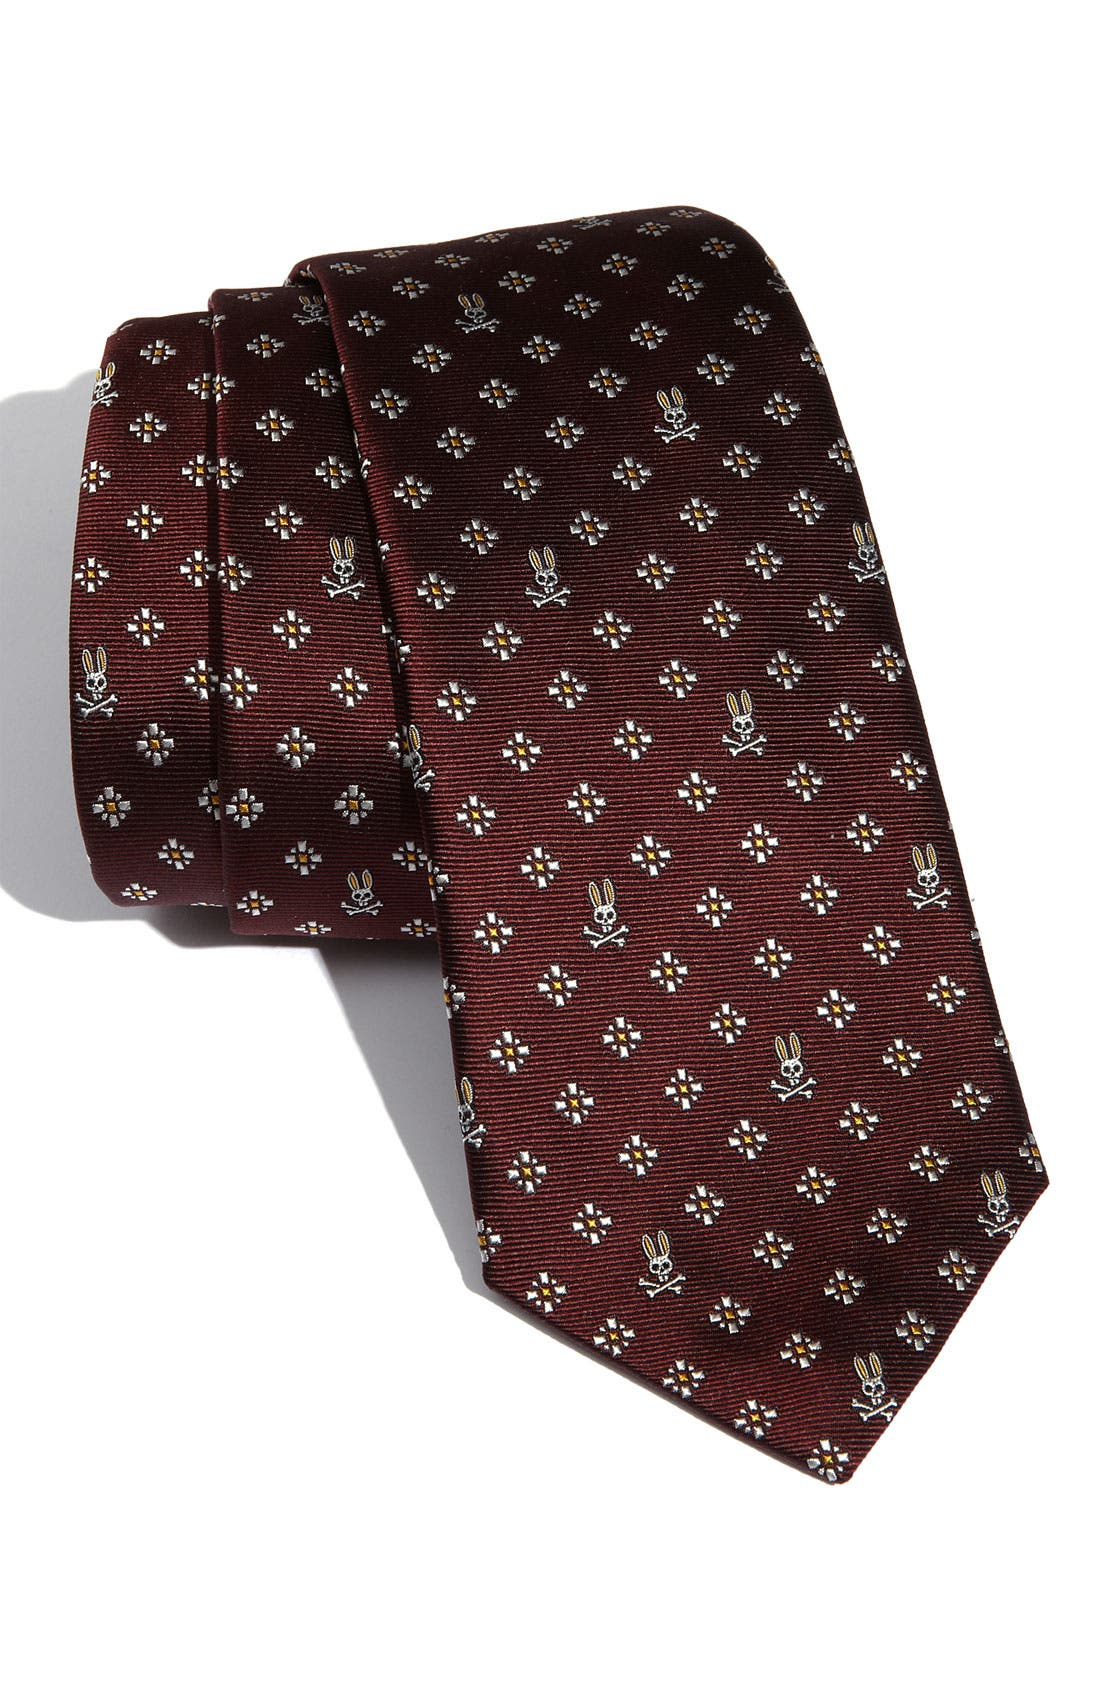 Alternate Image 1 Selected - Psycho Bunny 'Macclesfield' Woven Silk Tie